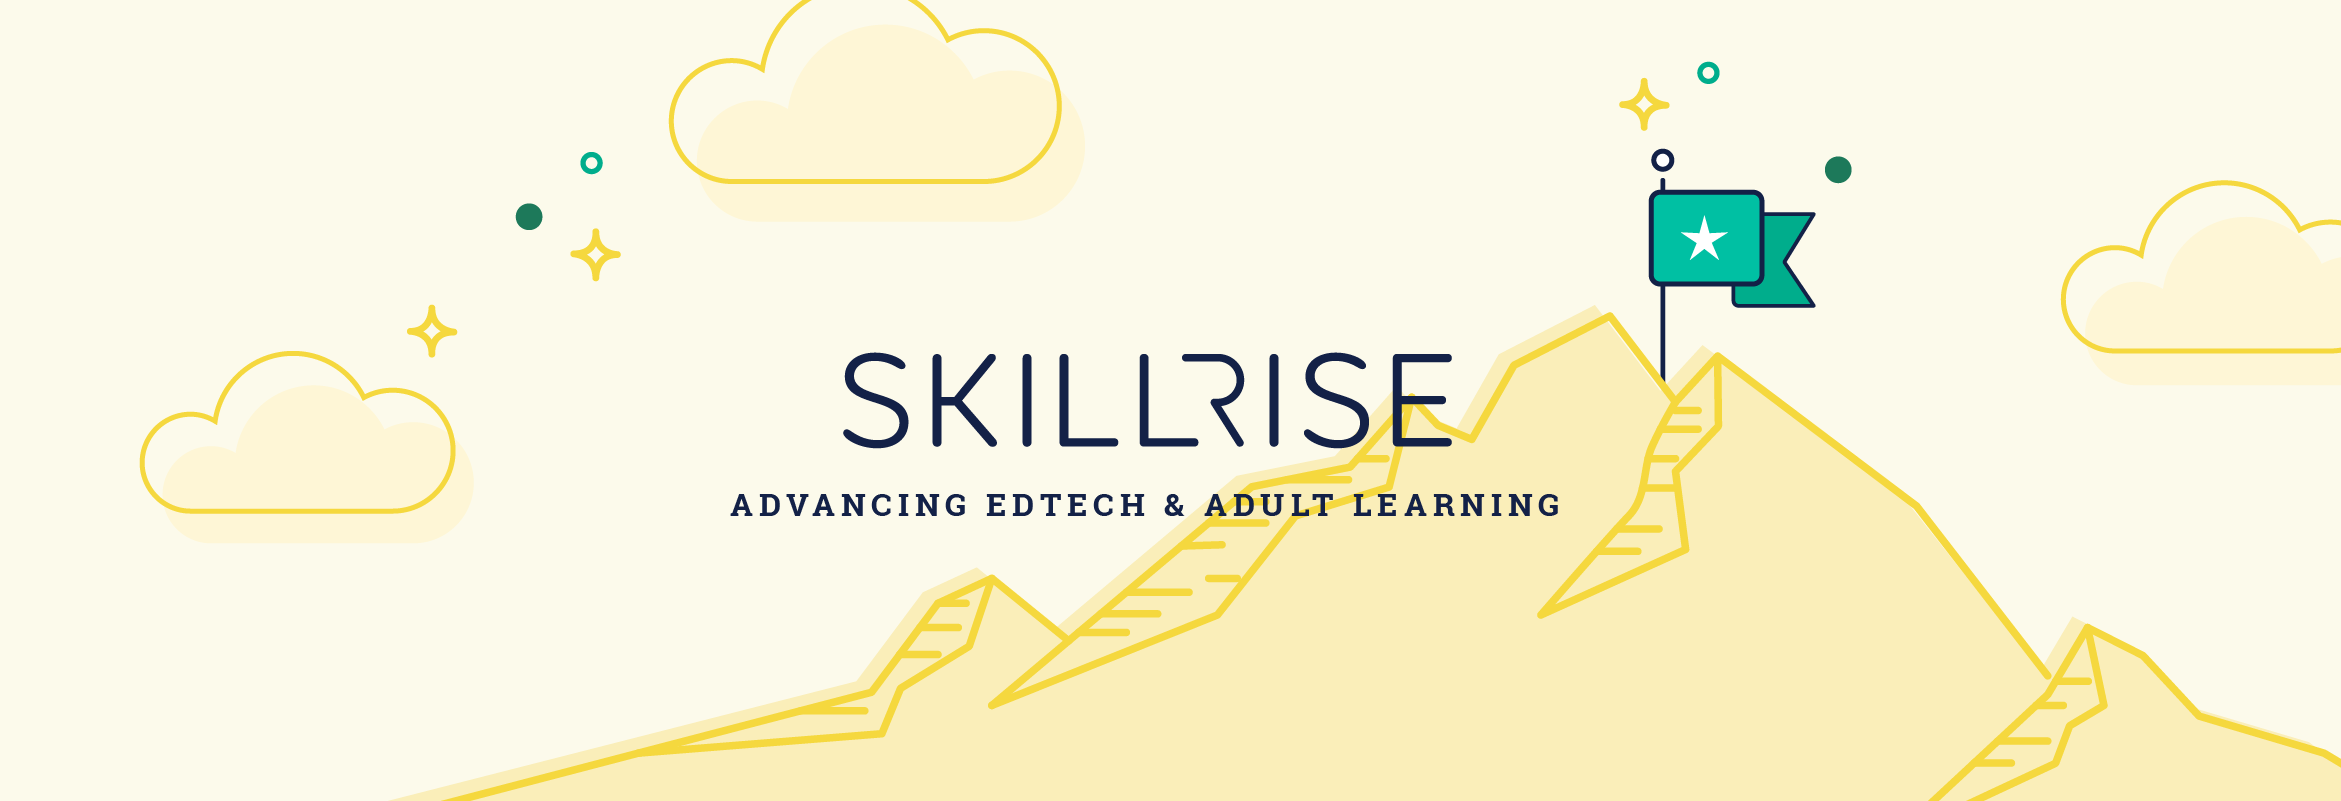 SkillRise is a way to meet goals for upskilling